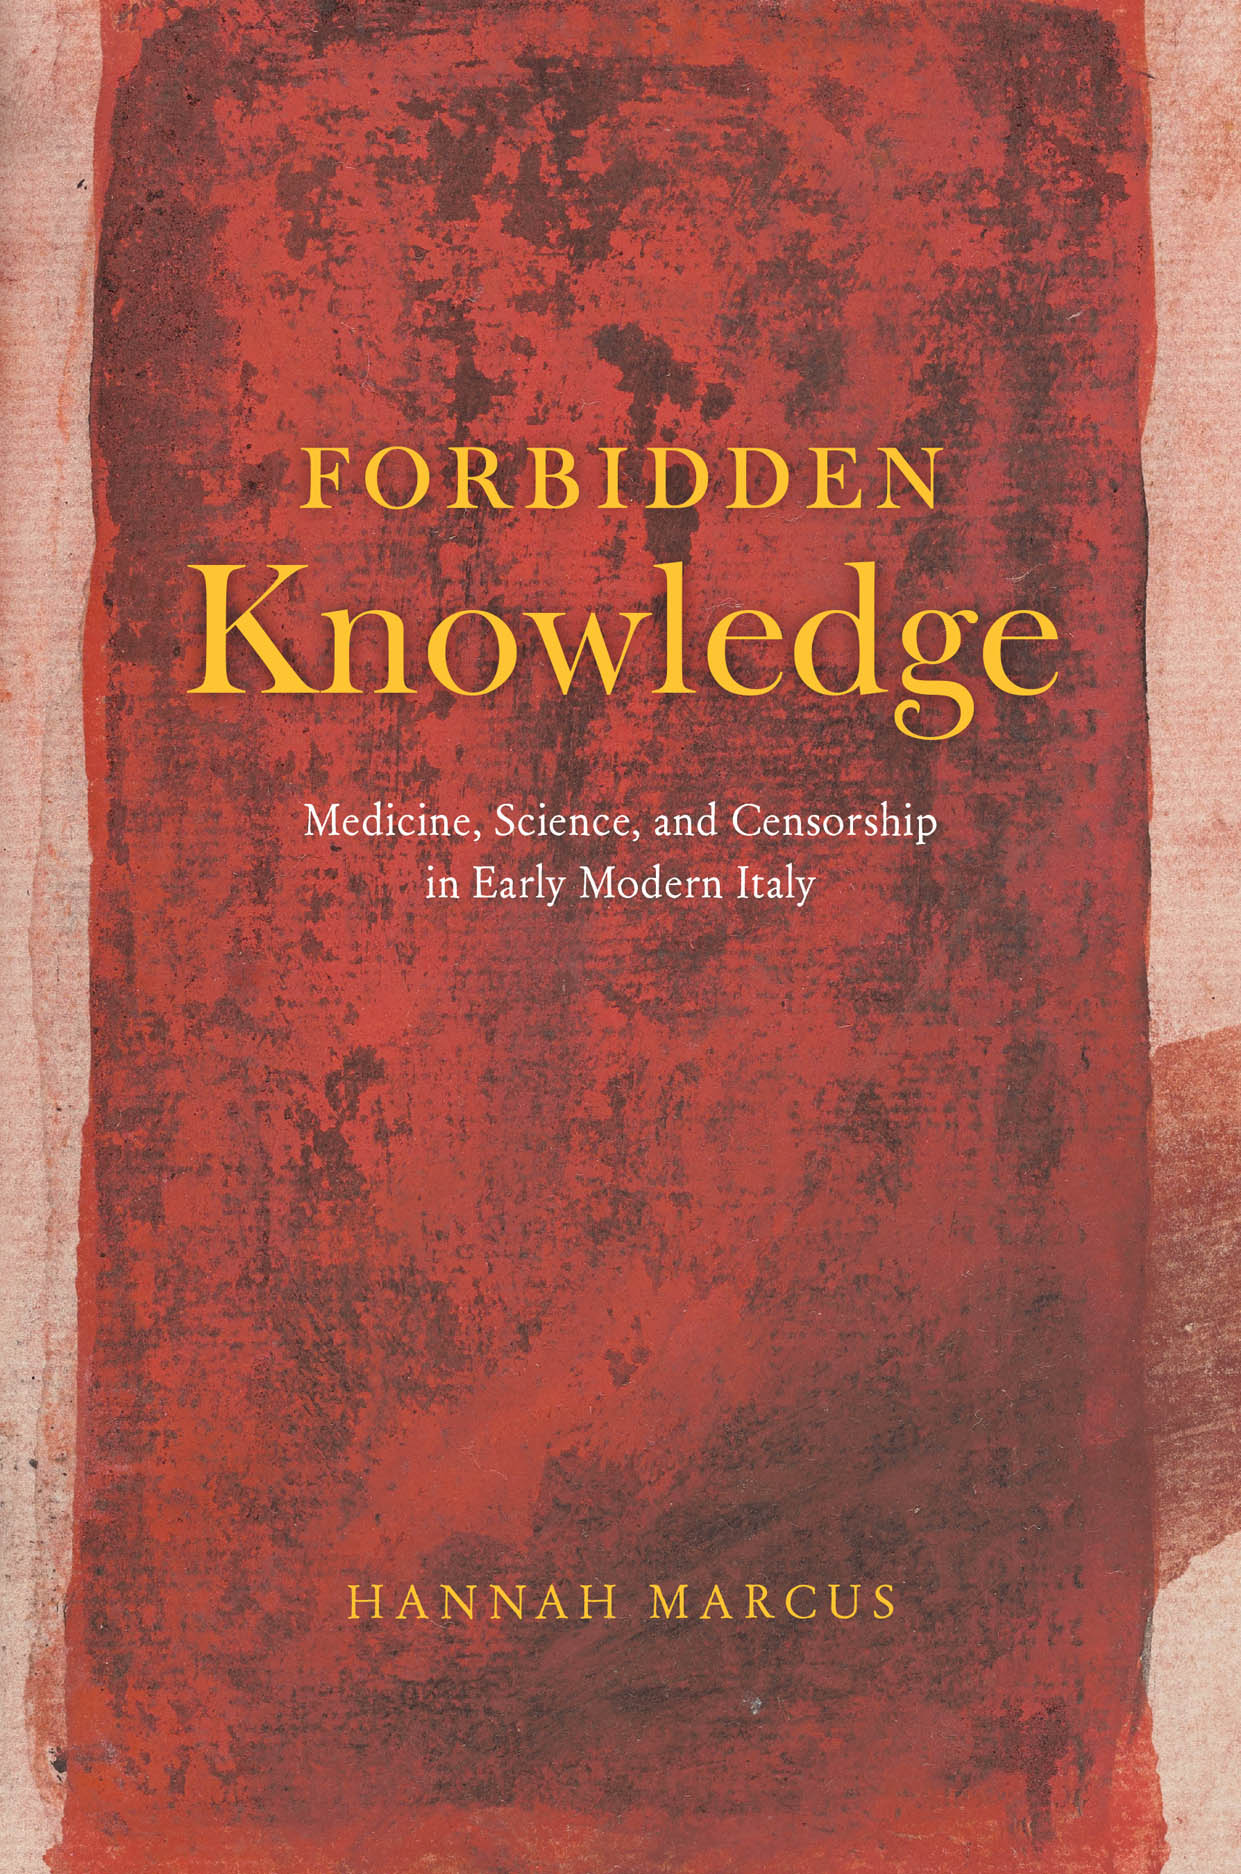 Forbidden Knowledge: Medicine, Science, and Censorship in Early Modern Italy